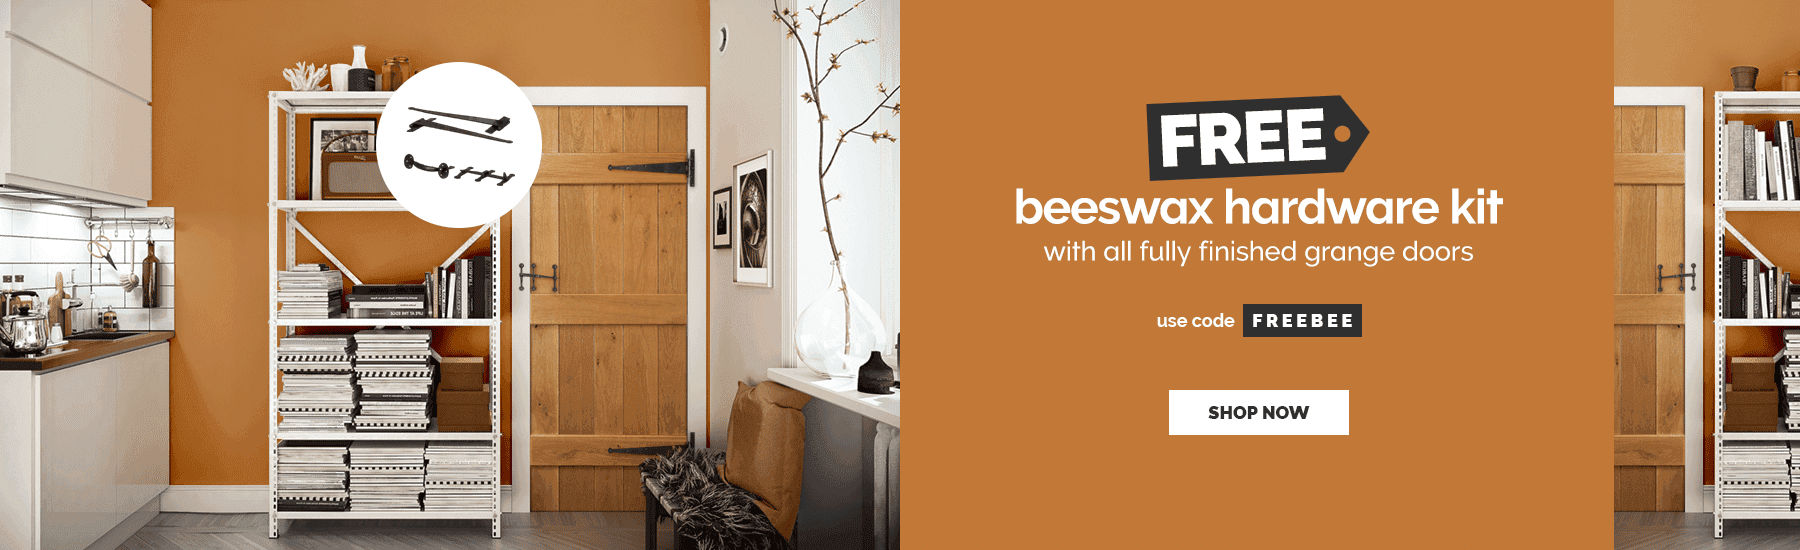 June - FREE beeswax hardware kit with fully finished grange doors